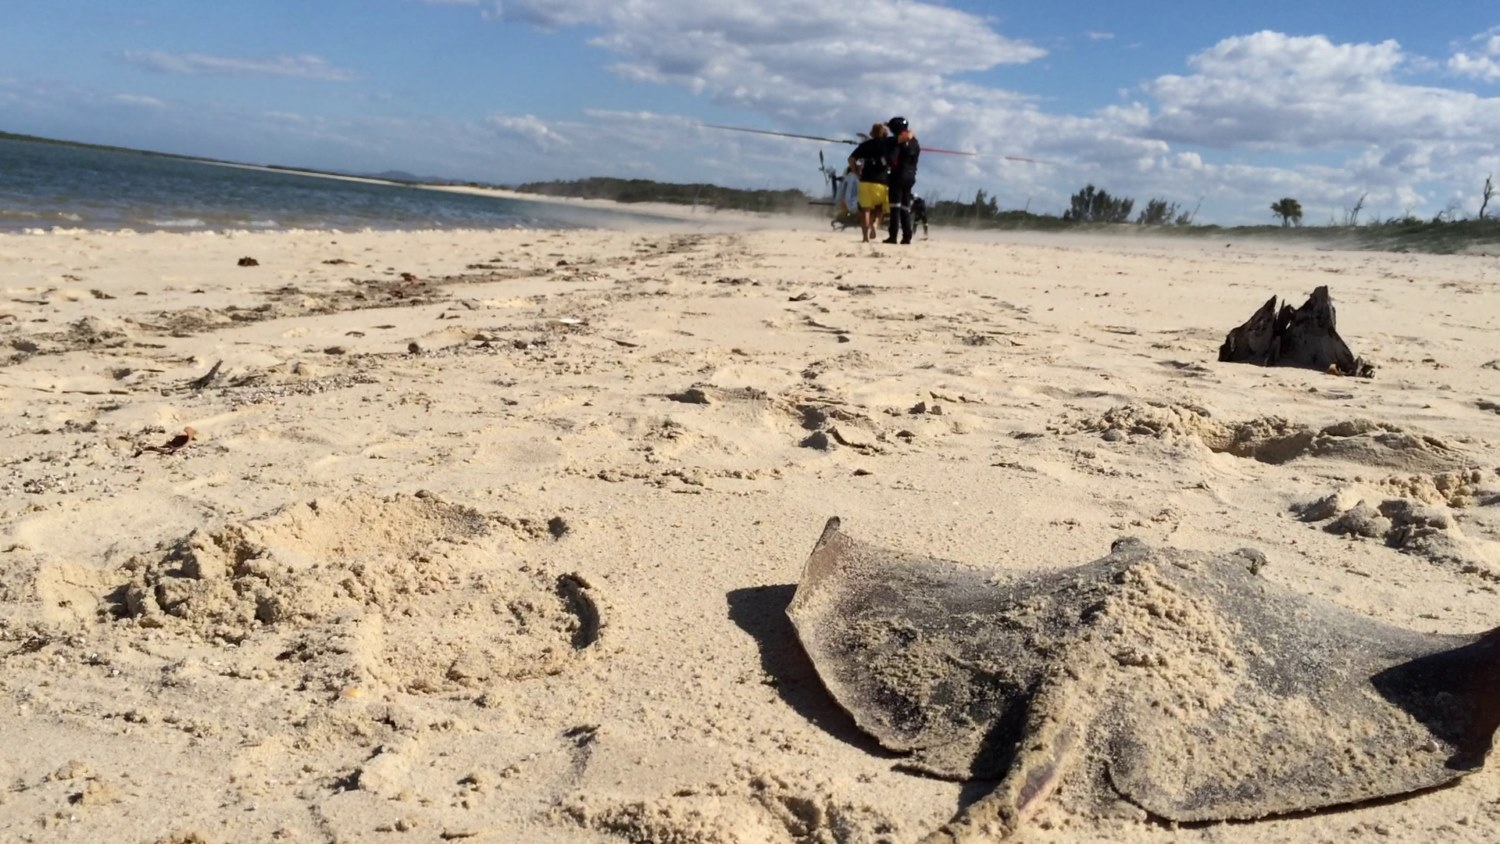 A sting ray injured a man at Corio Bay yesterday